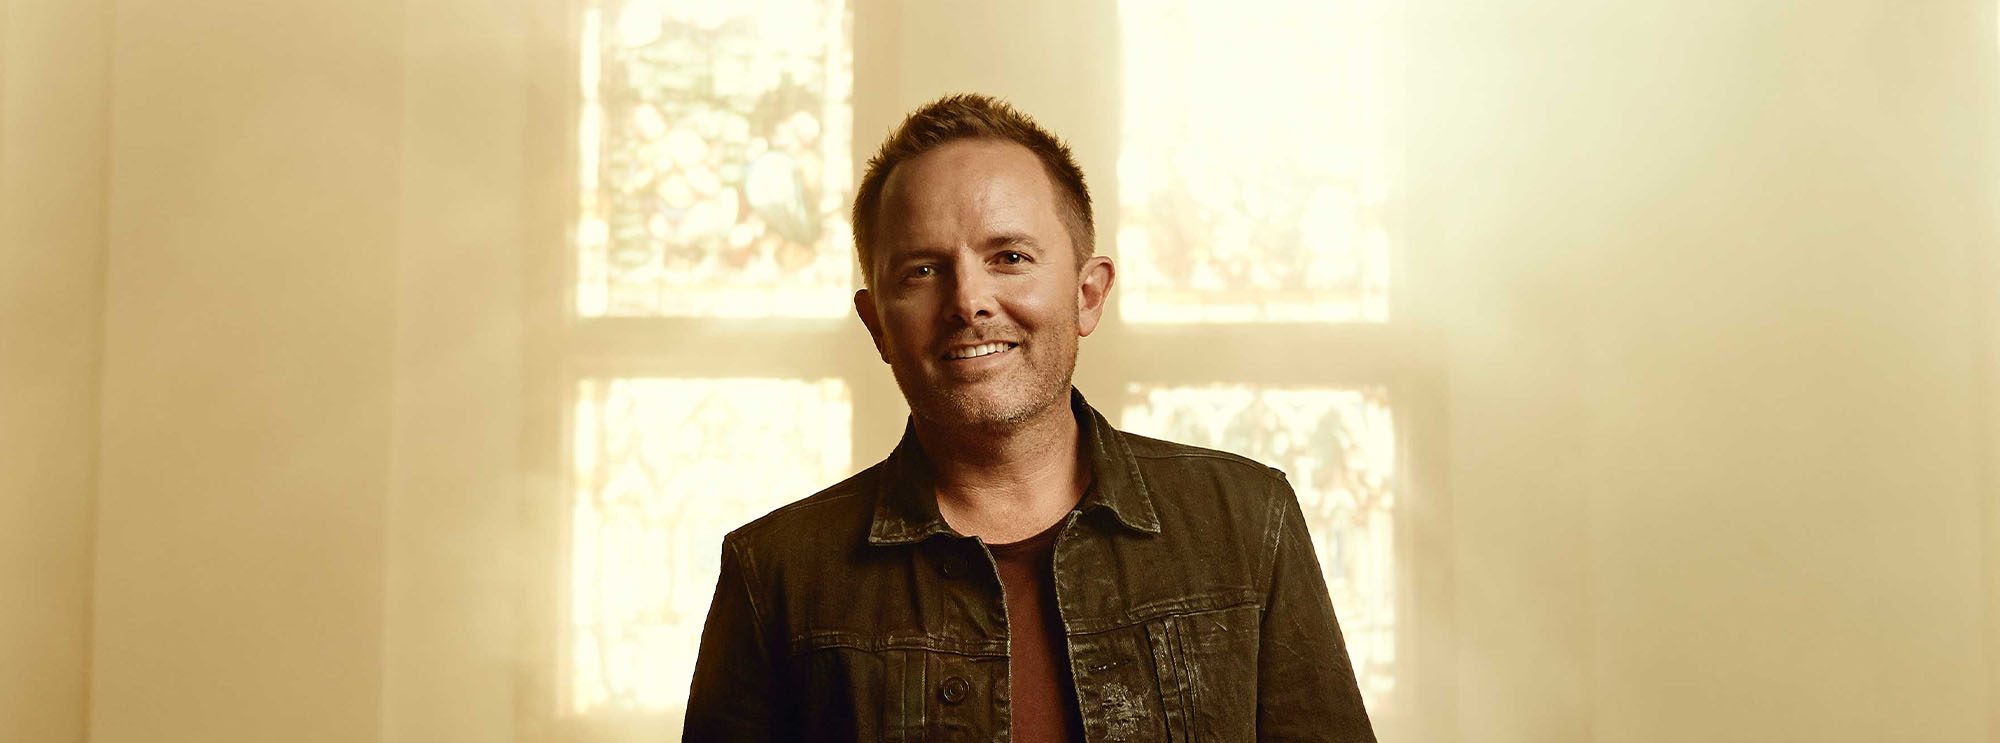 His Name Is Wonderful by Chris Tomlin